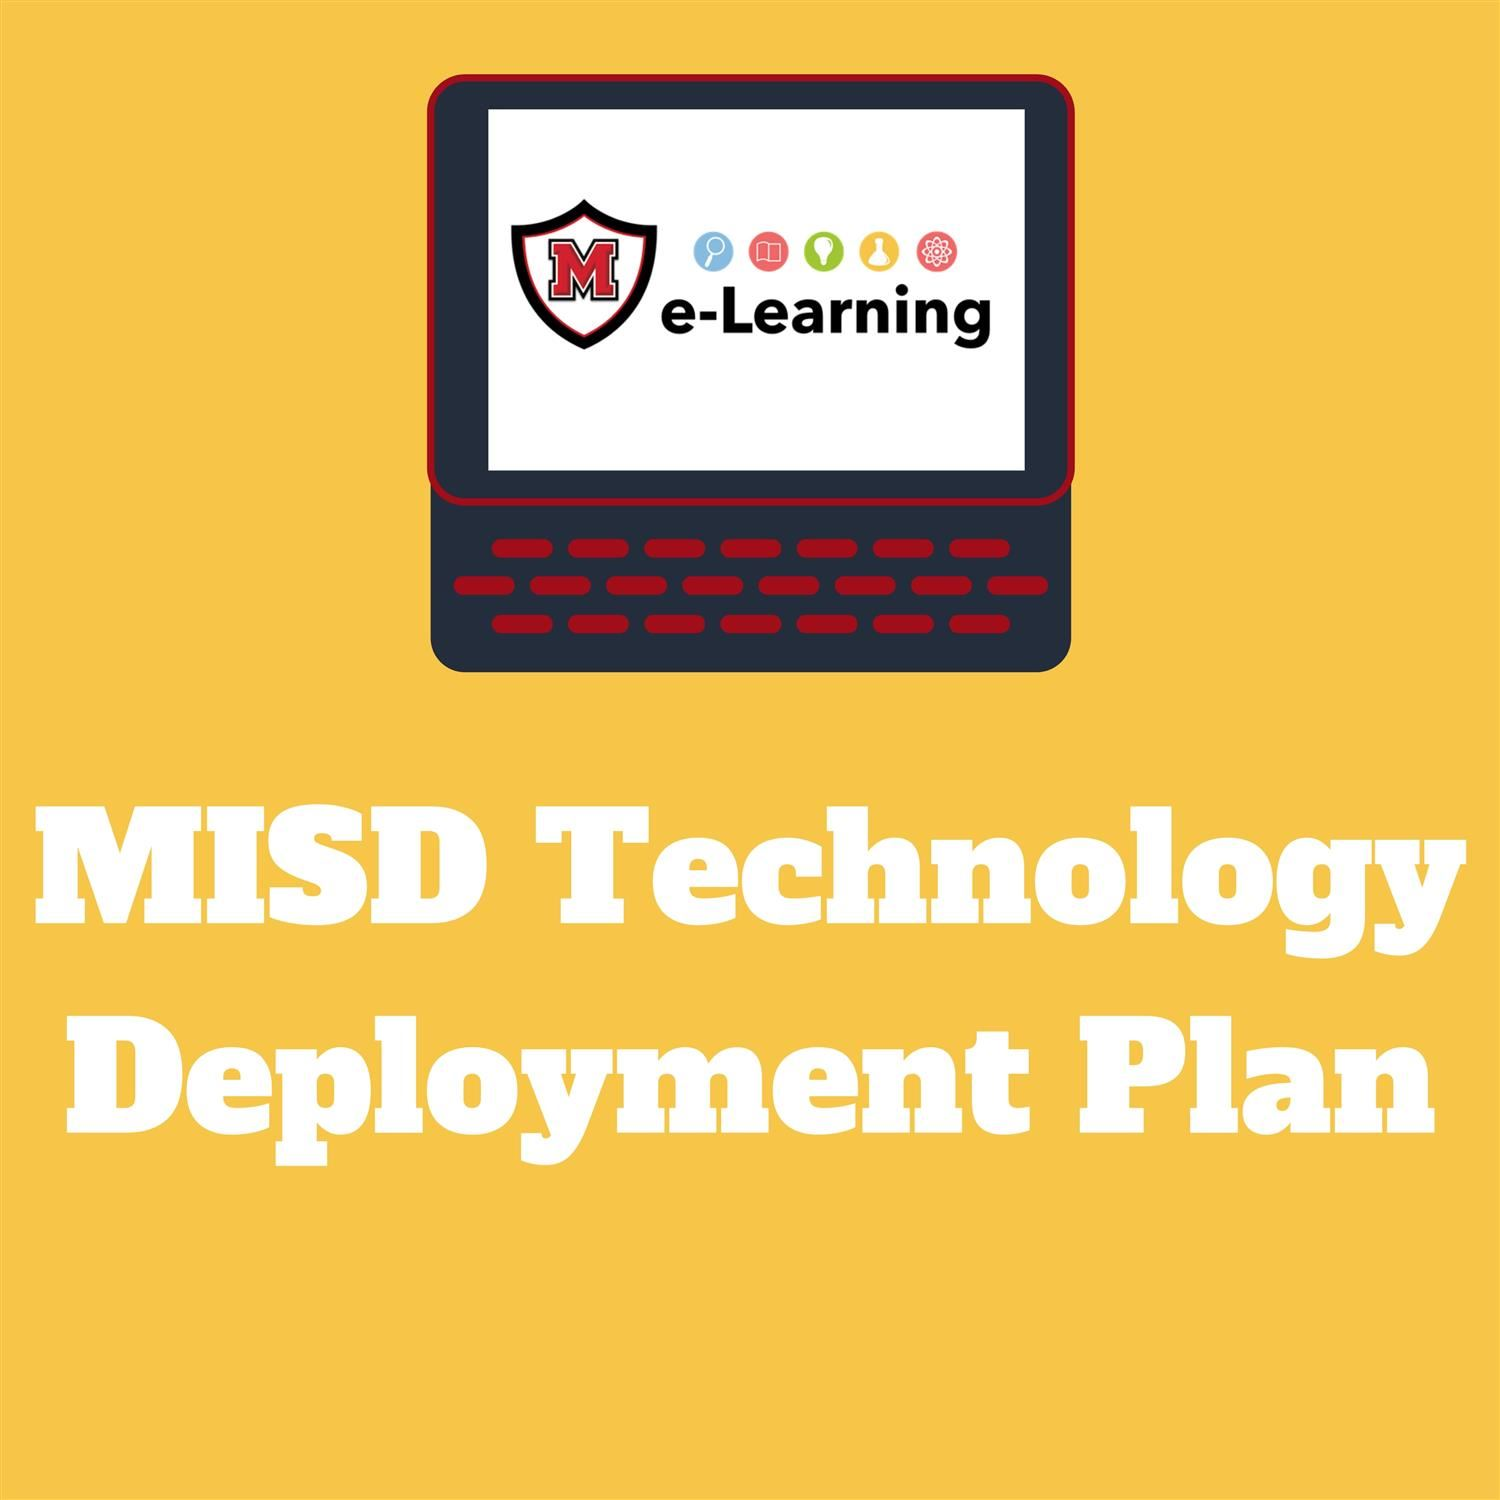 MISD Technology Deployment Plan